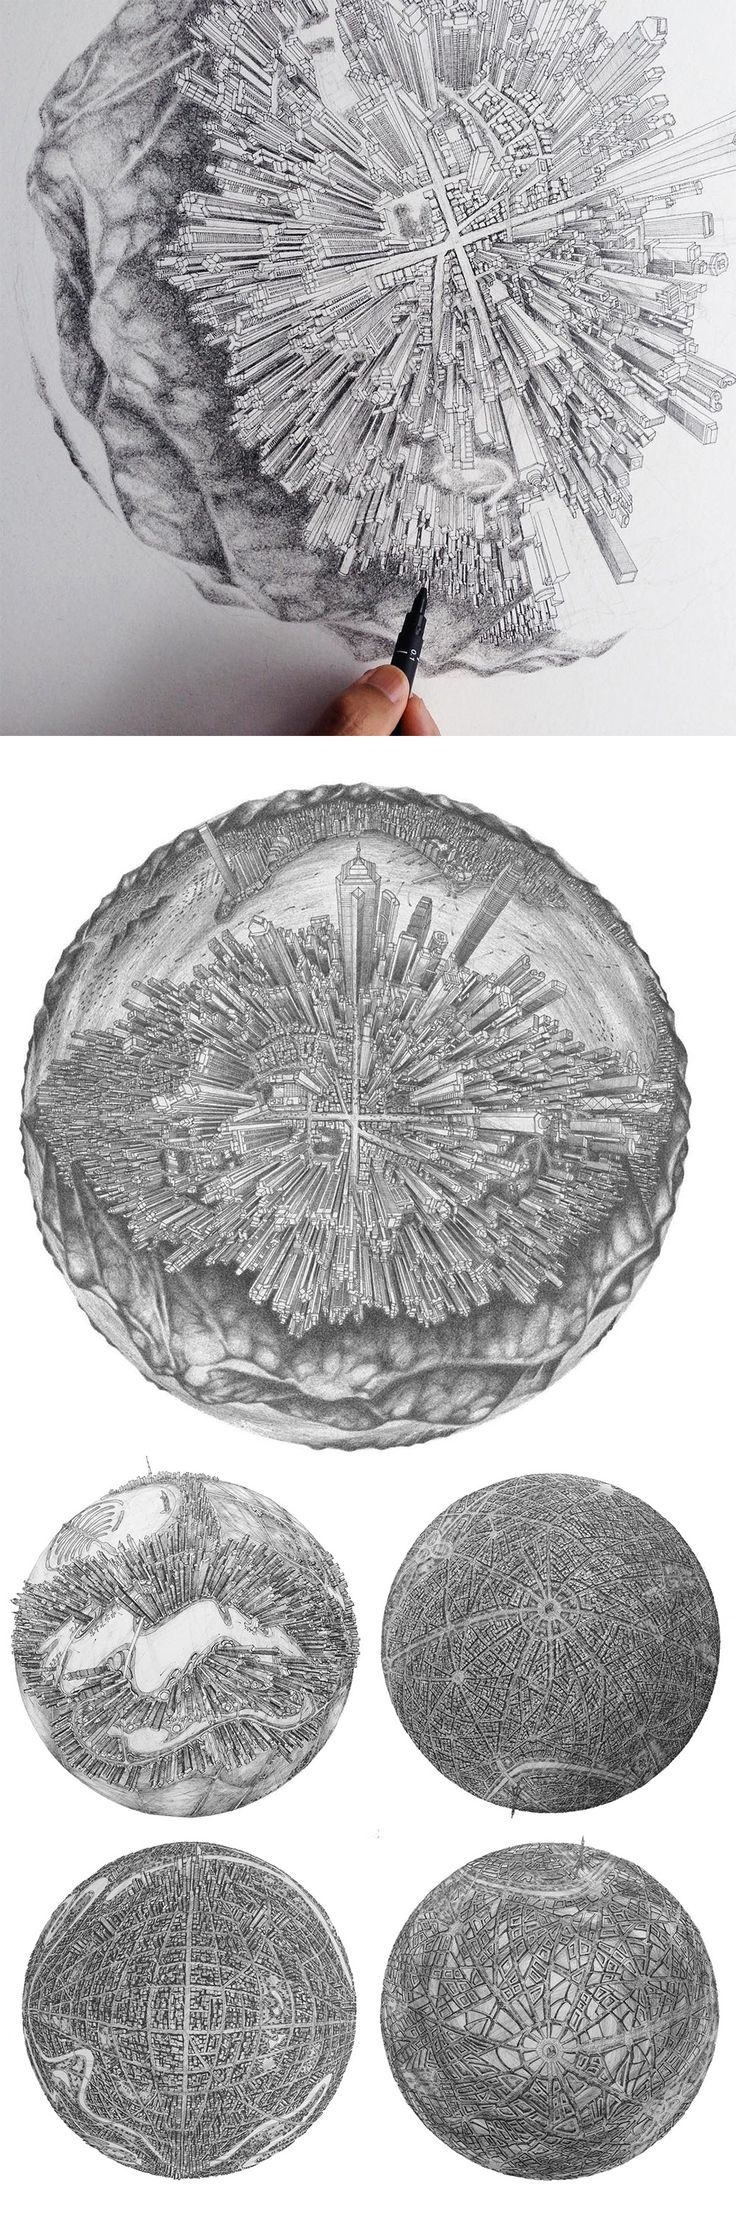 An Architect Maps the Familiar Urban Details of Cities onto Moonlike Globes